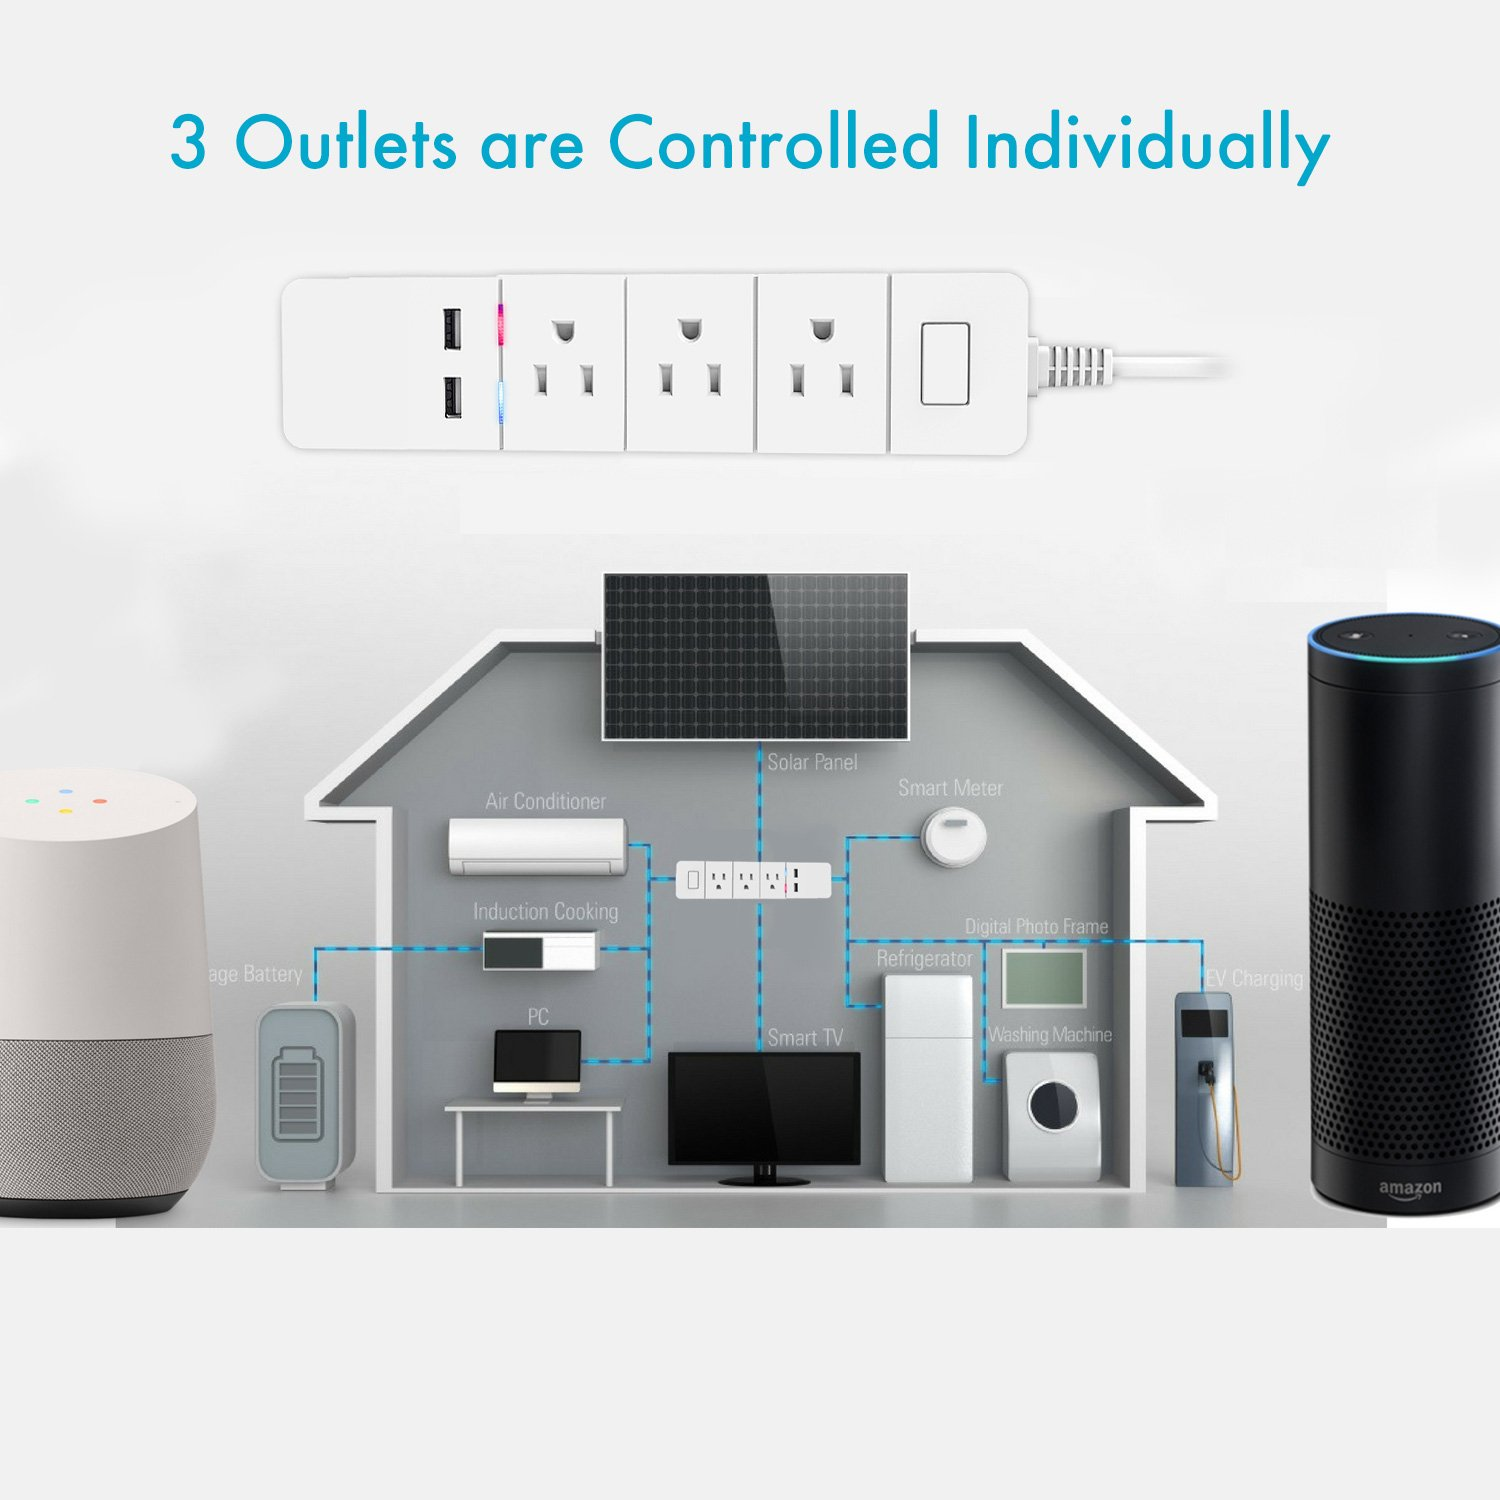 Merisny WiFi Power Strip Smart Surge Protector with Individual Control - Works with Alexa Google Home - Smart Surge Protector with USB - Remote Control by Smart Phone by Merisny (Image #2)